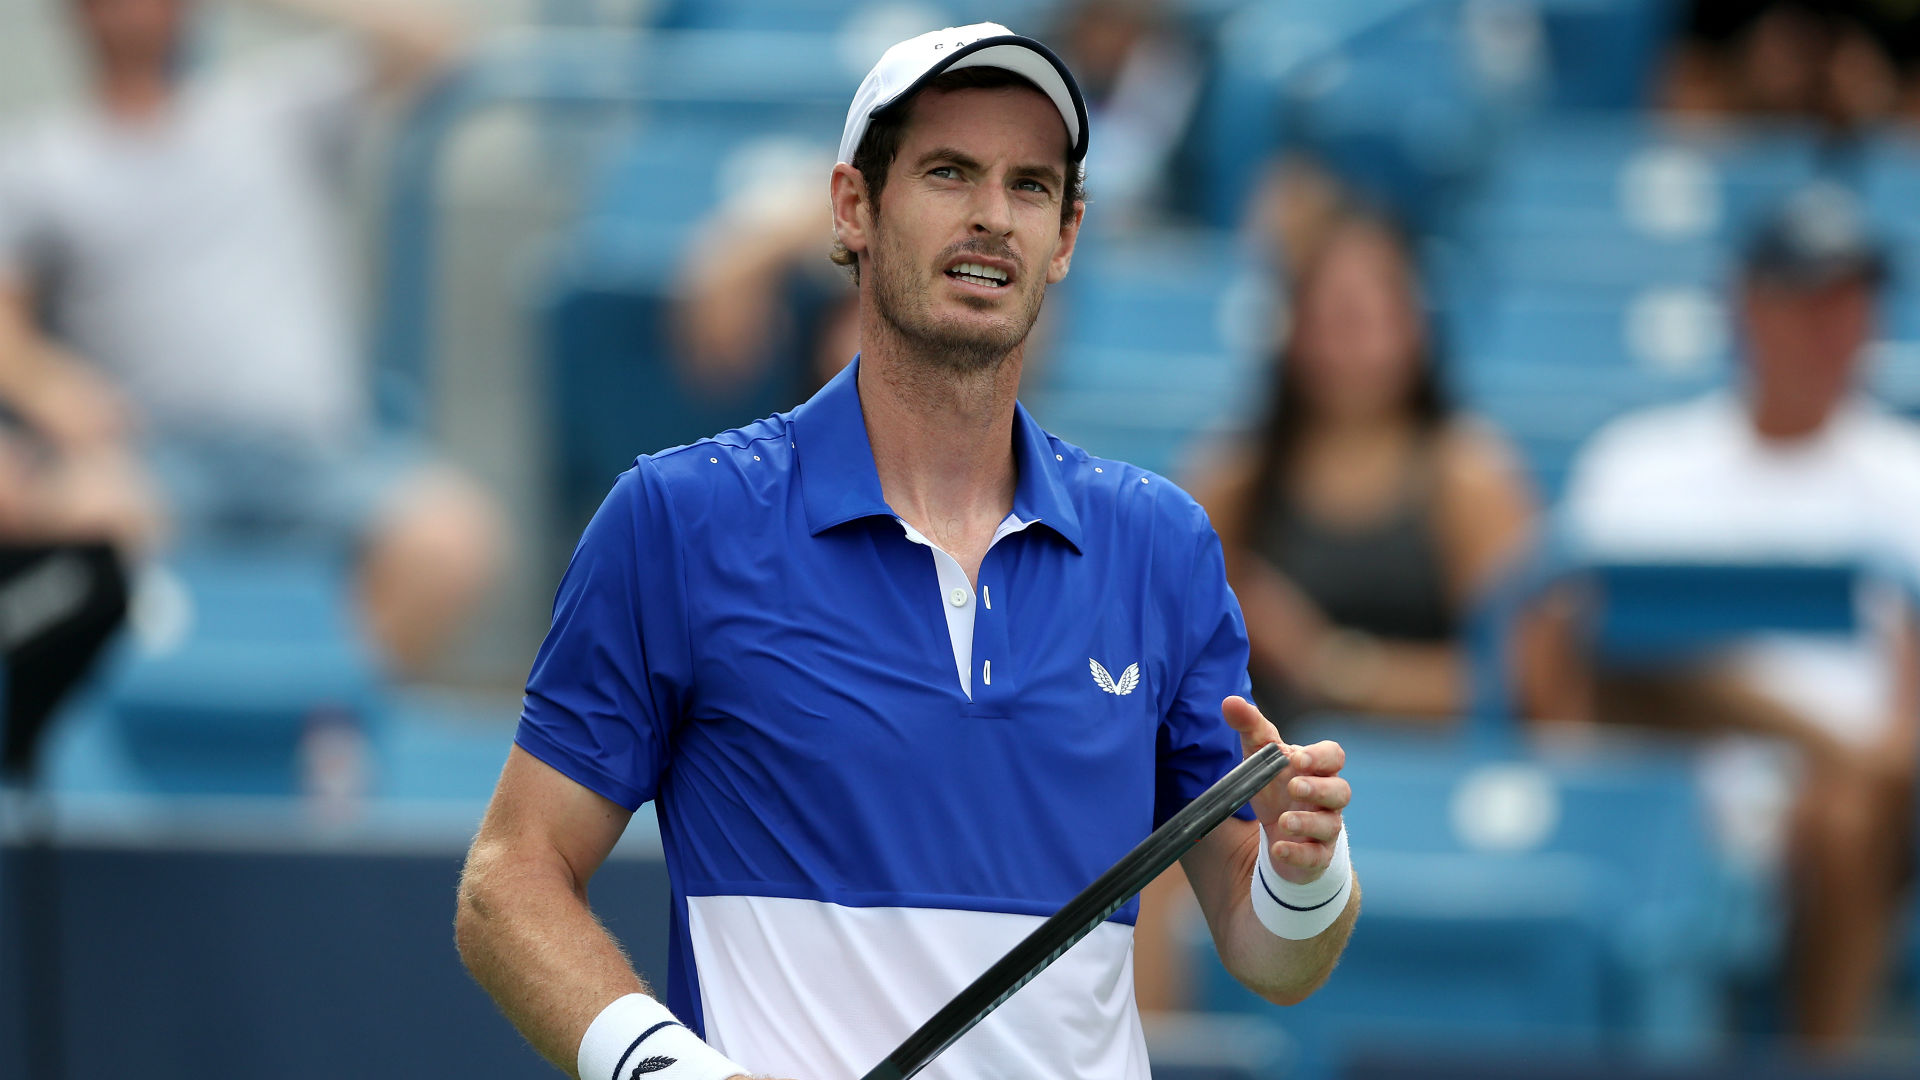 Andy Murray to skip U.S. Open singles